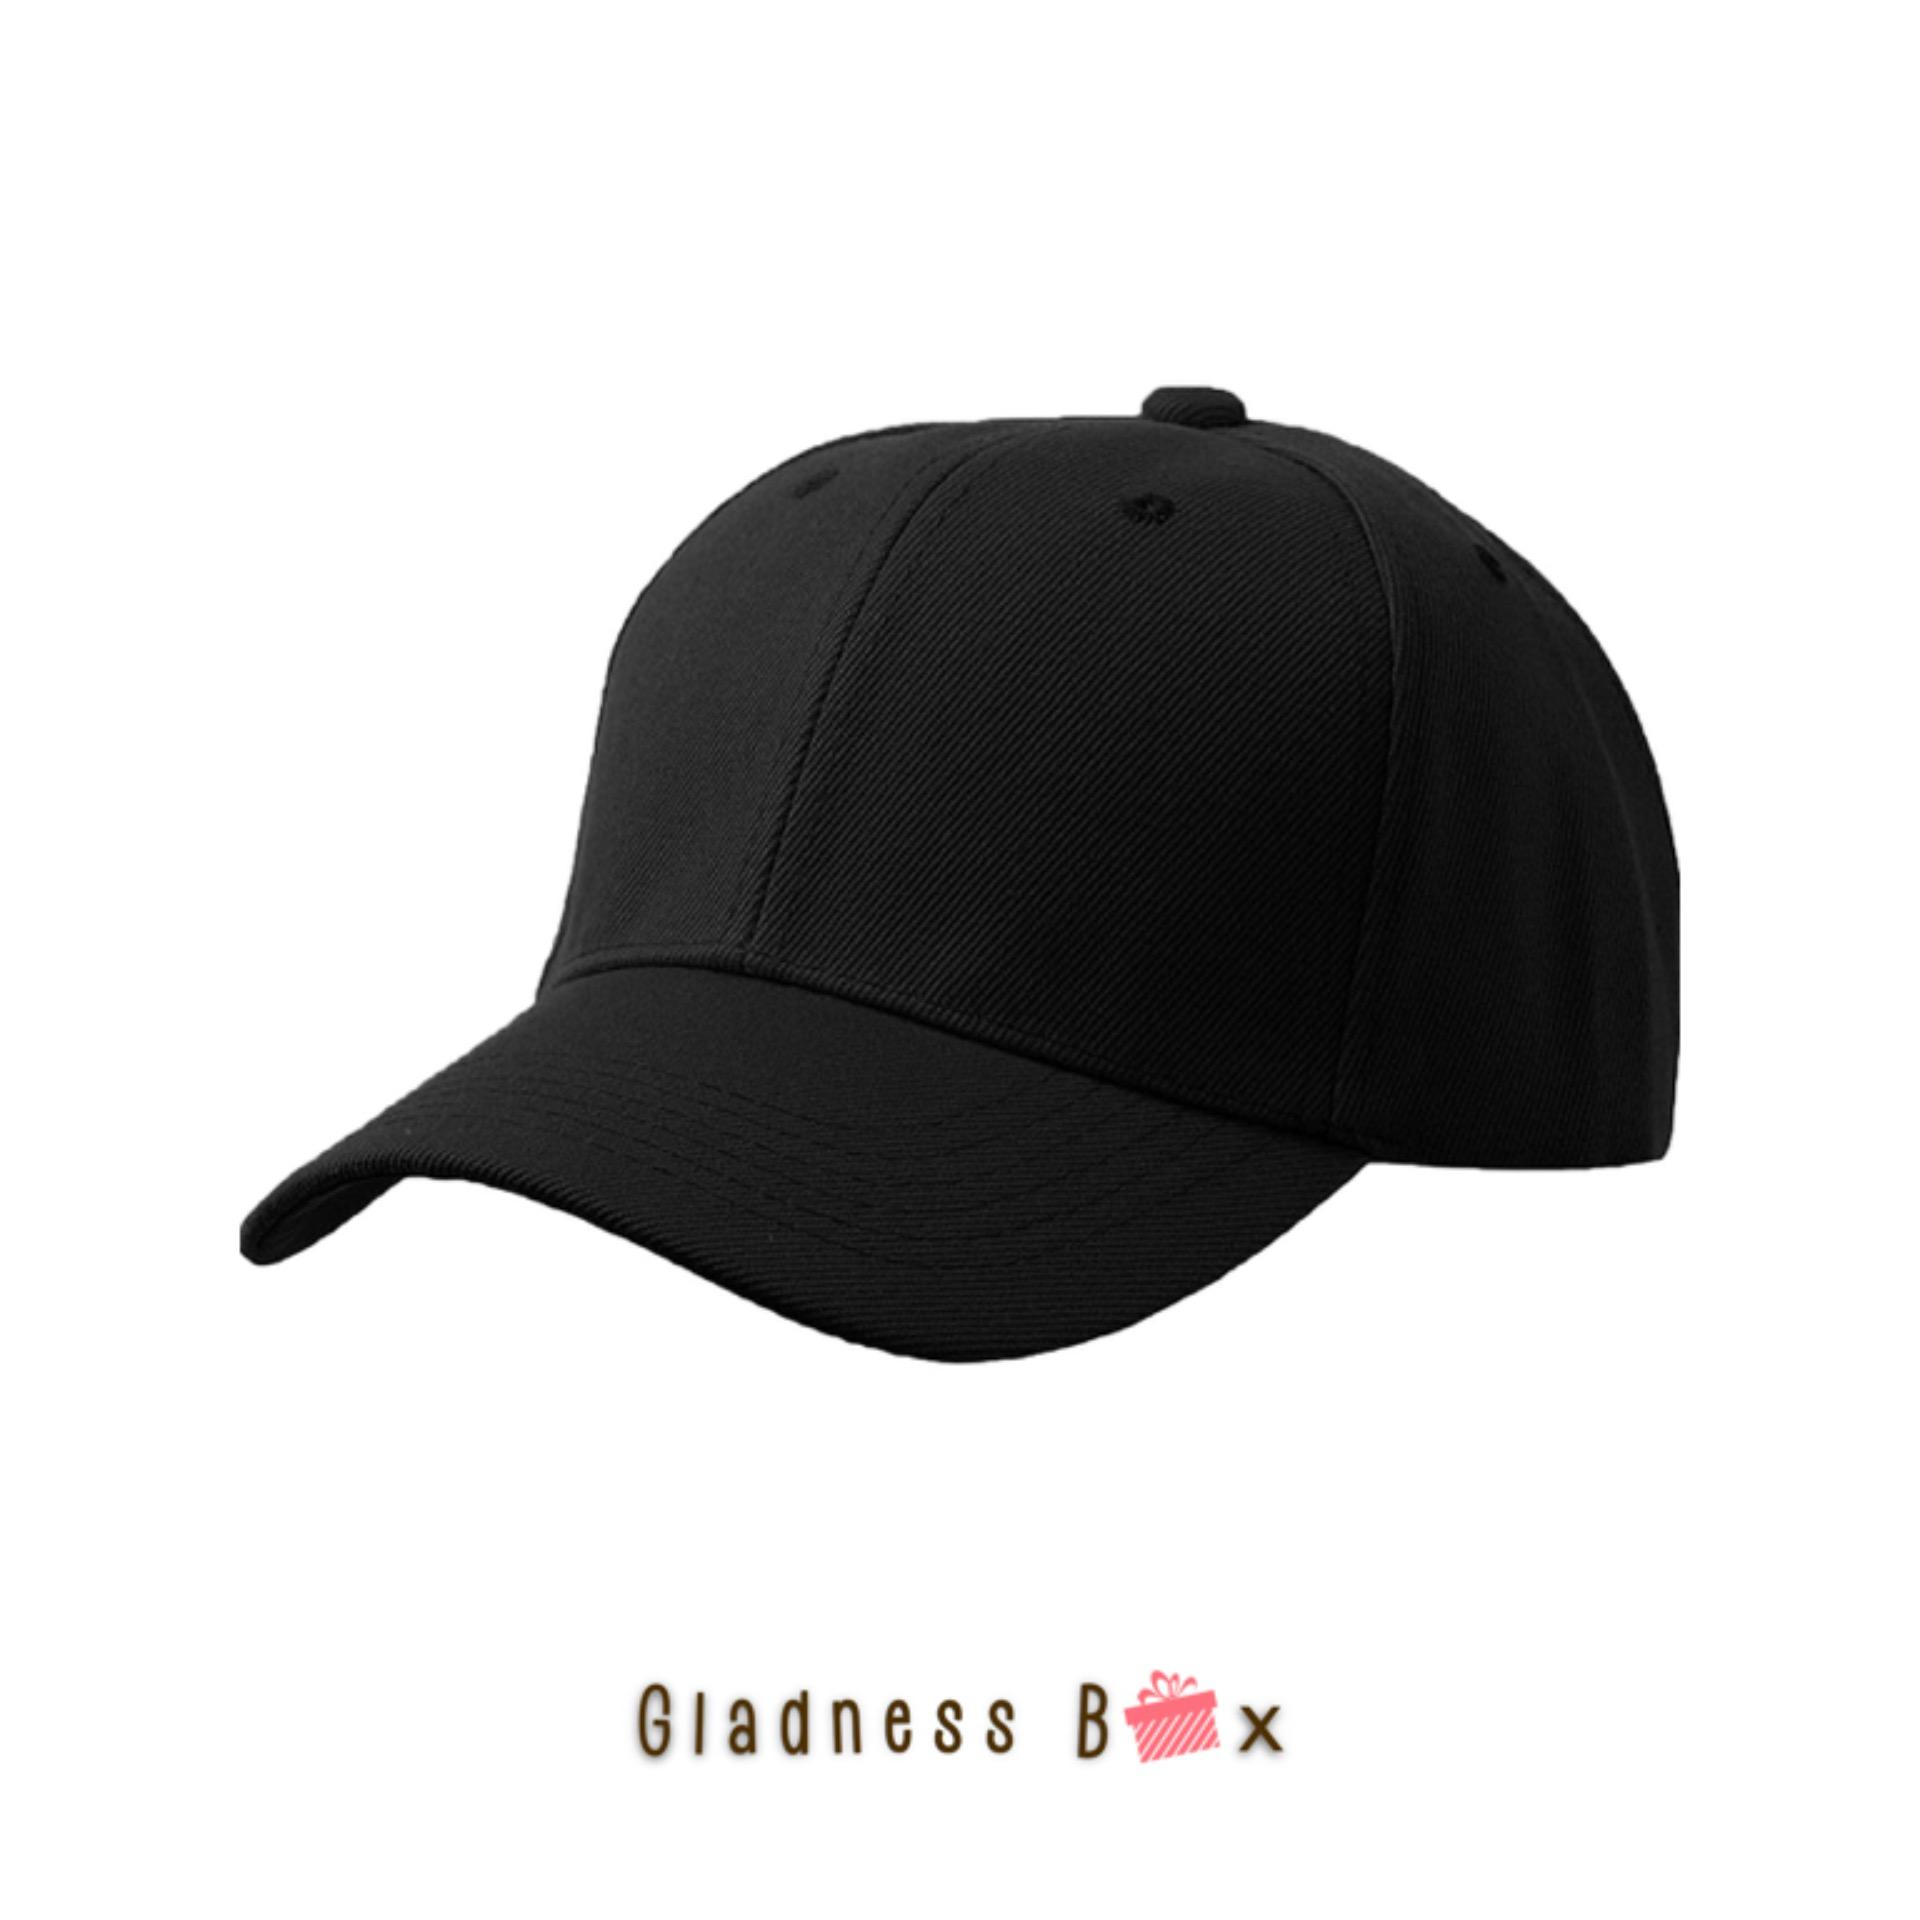 4b0501ee450 Gladness Box High Quality Plain Baseball Cap for Men Women Unisex